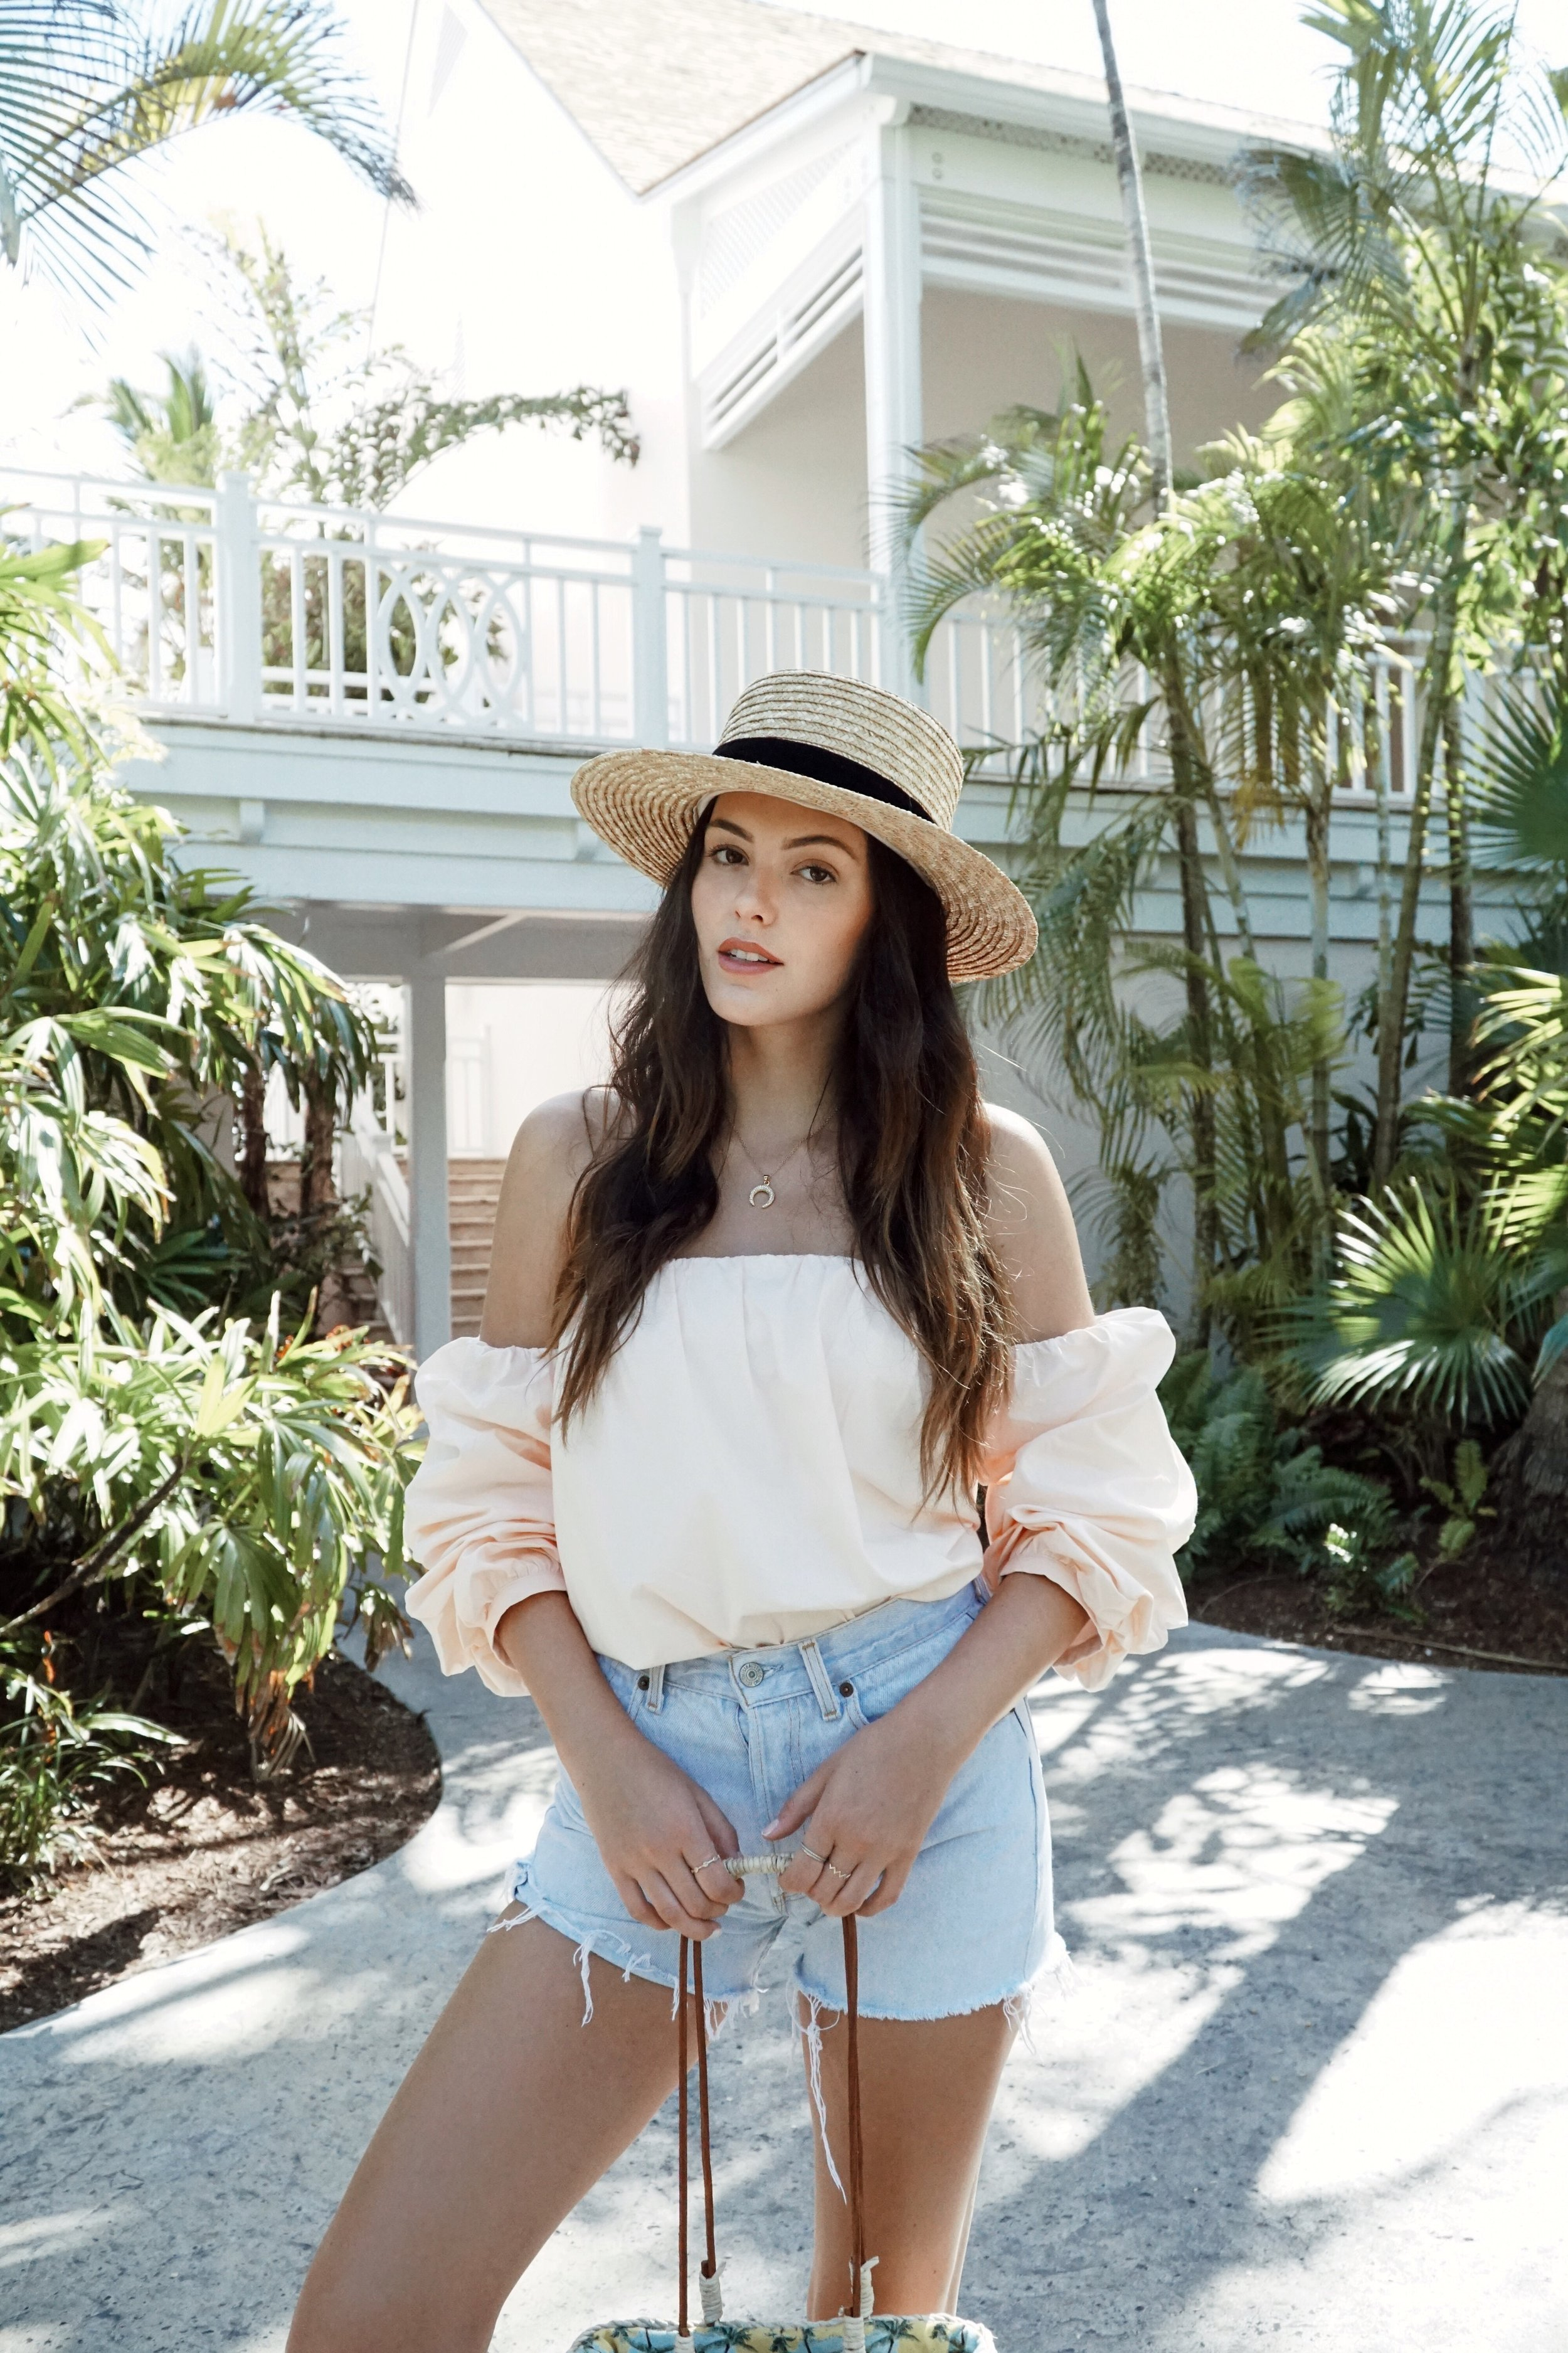 Julia Friedman in a L'academie top, levis jean shorts, and a Lack of Color Spencer Boater hat iat the One&Only Resort in the Bahamas.